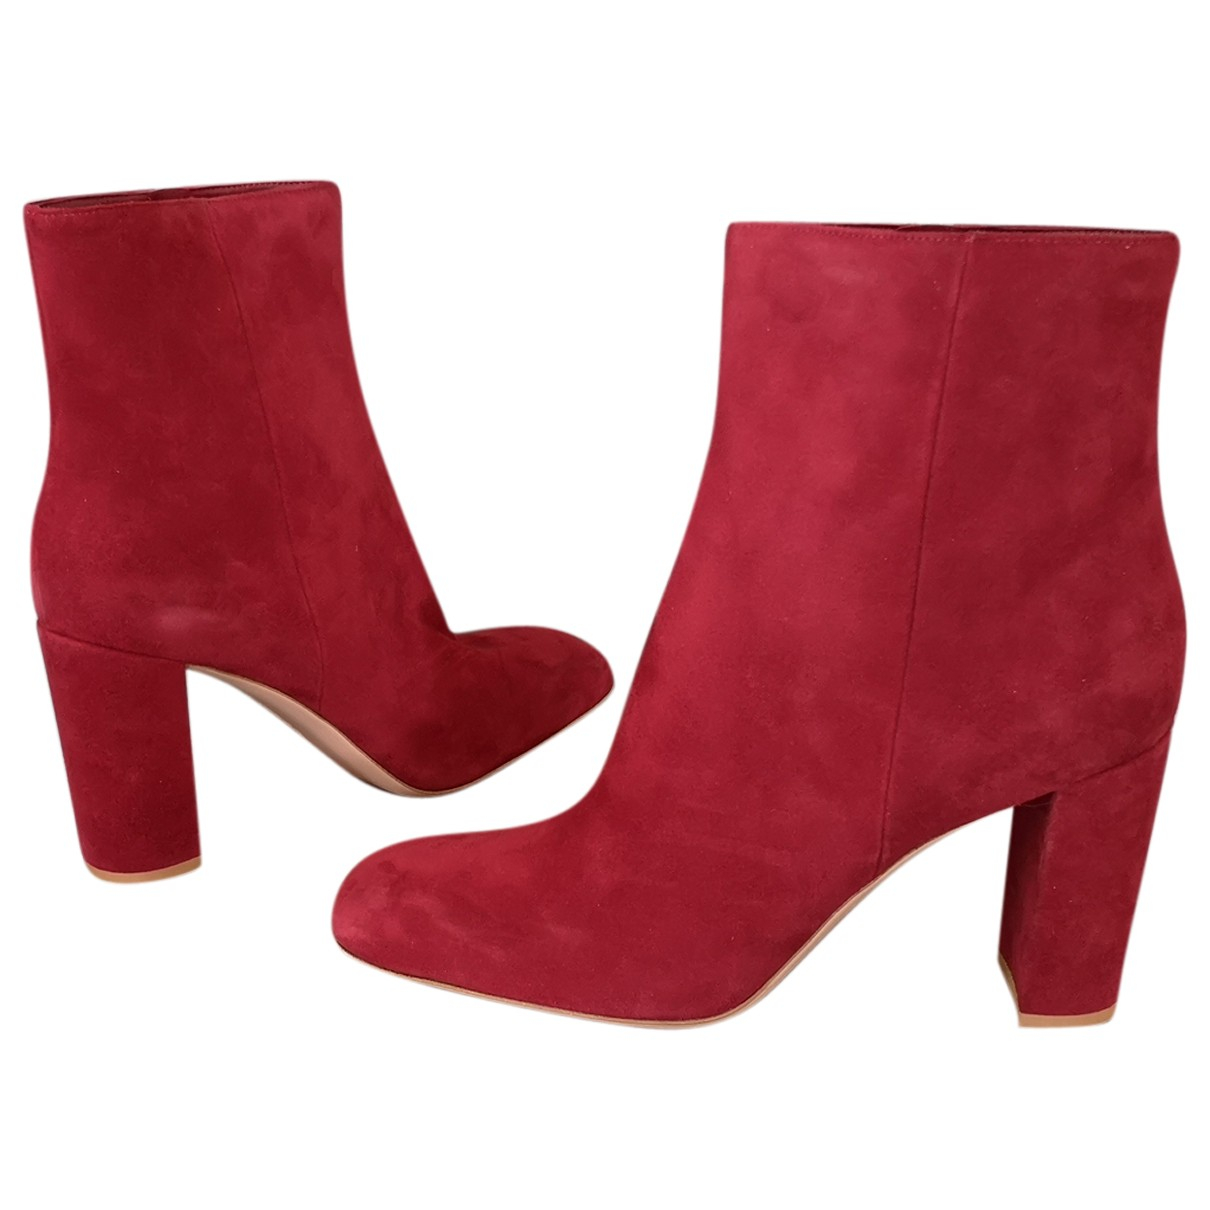 Gianvito Rossi N Red Suede Ankle boots for Women 41 EU